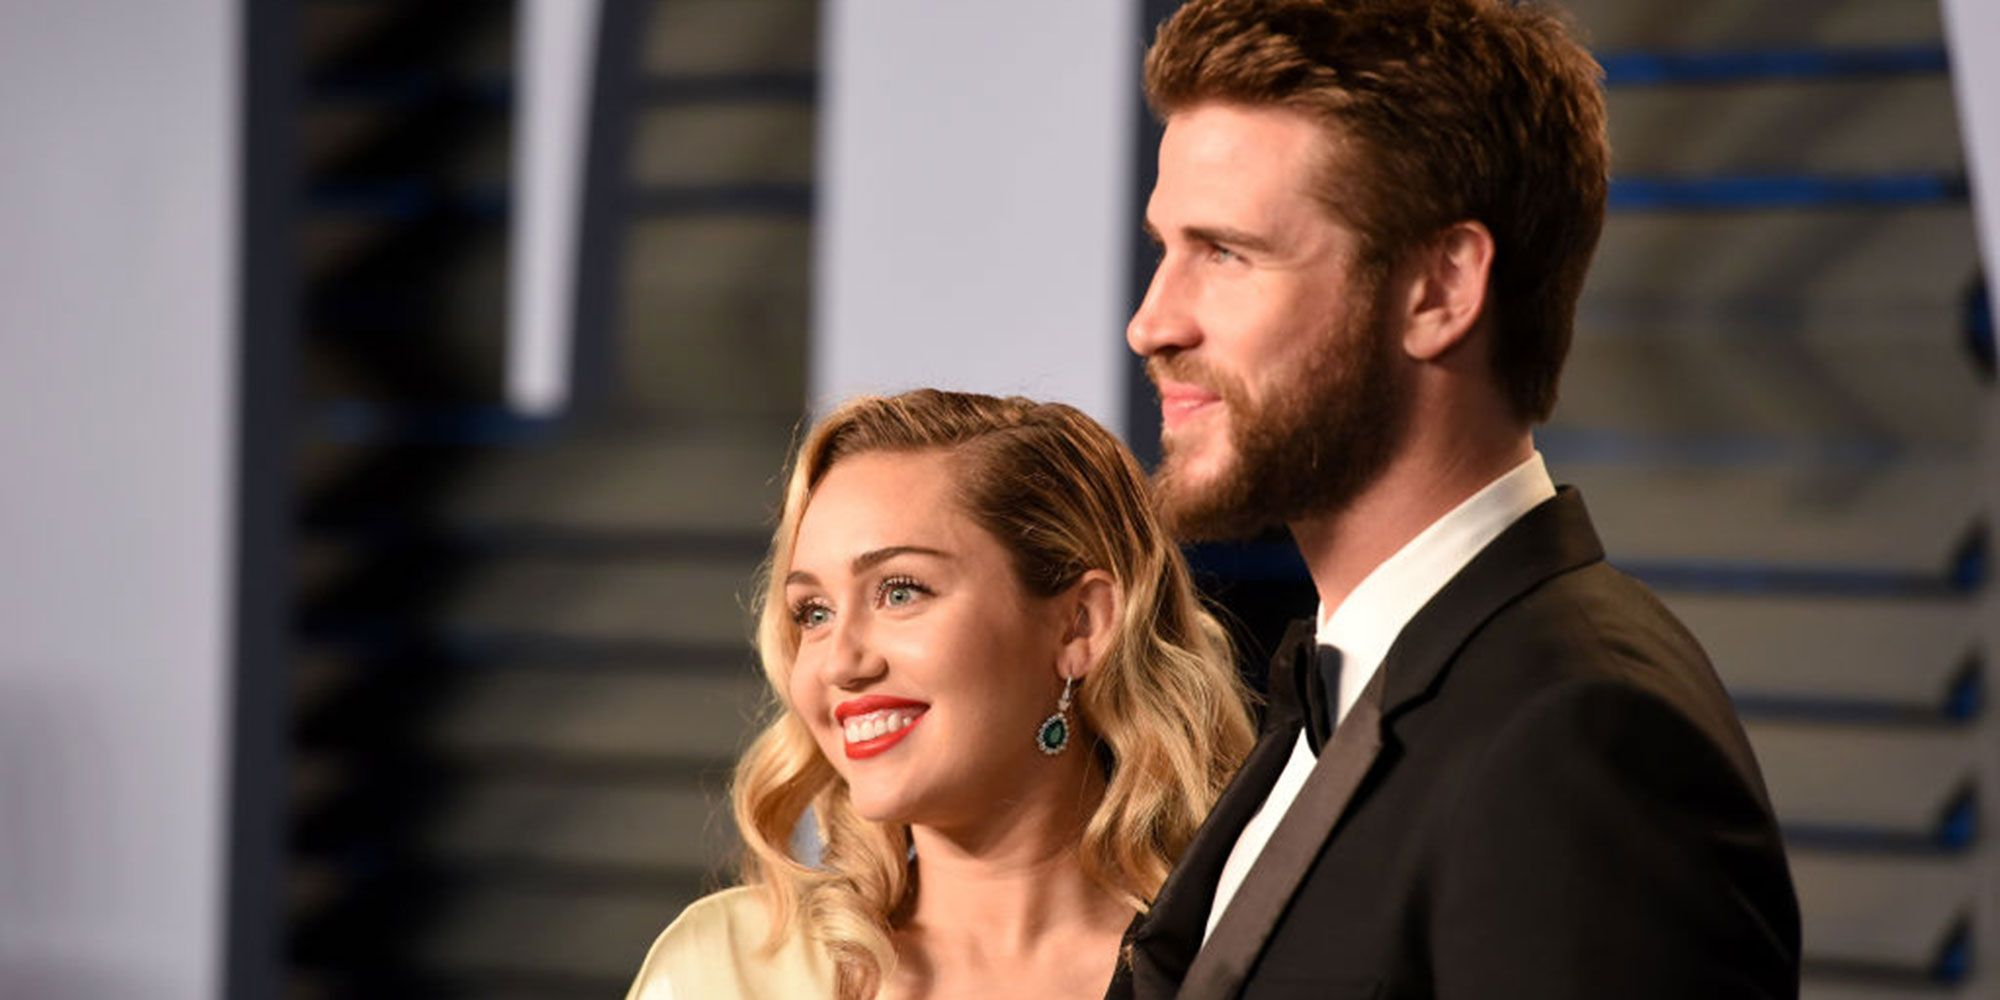 Miley Cyrus Vanity Fair interview - Queer while married to Liam Hemsworth